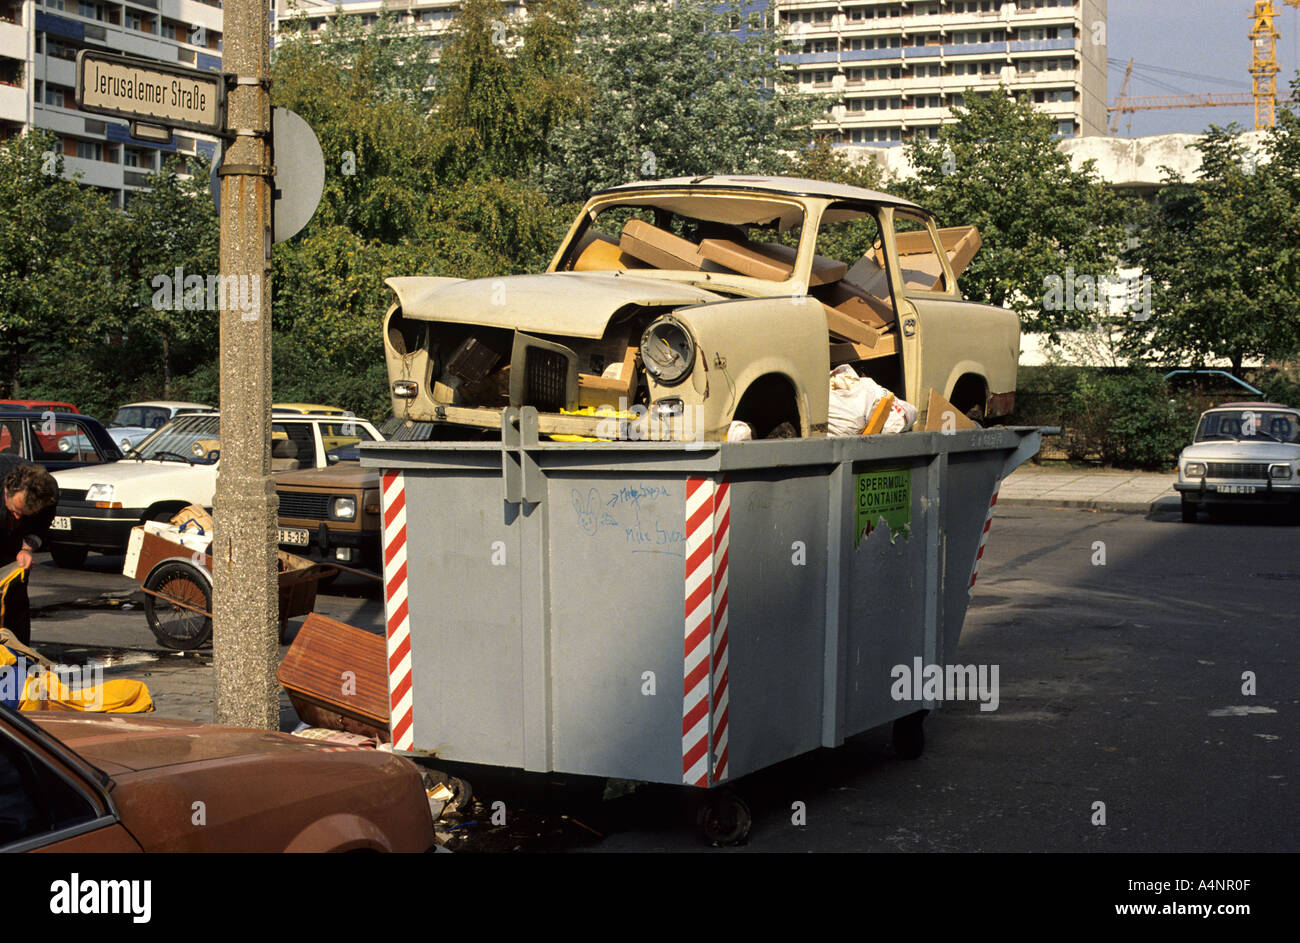 Summer 1990. The very first Trabant car that got thrown away in East Berlin after the fall of the Berlin Wall in 1989. - Stock Image